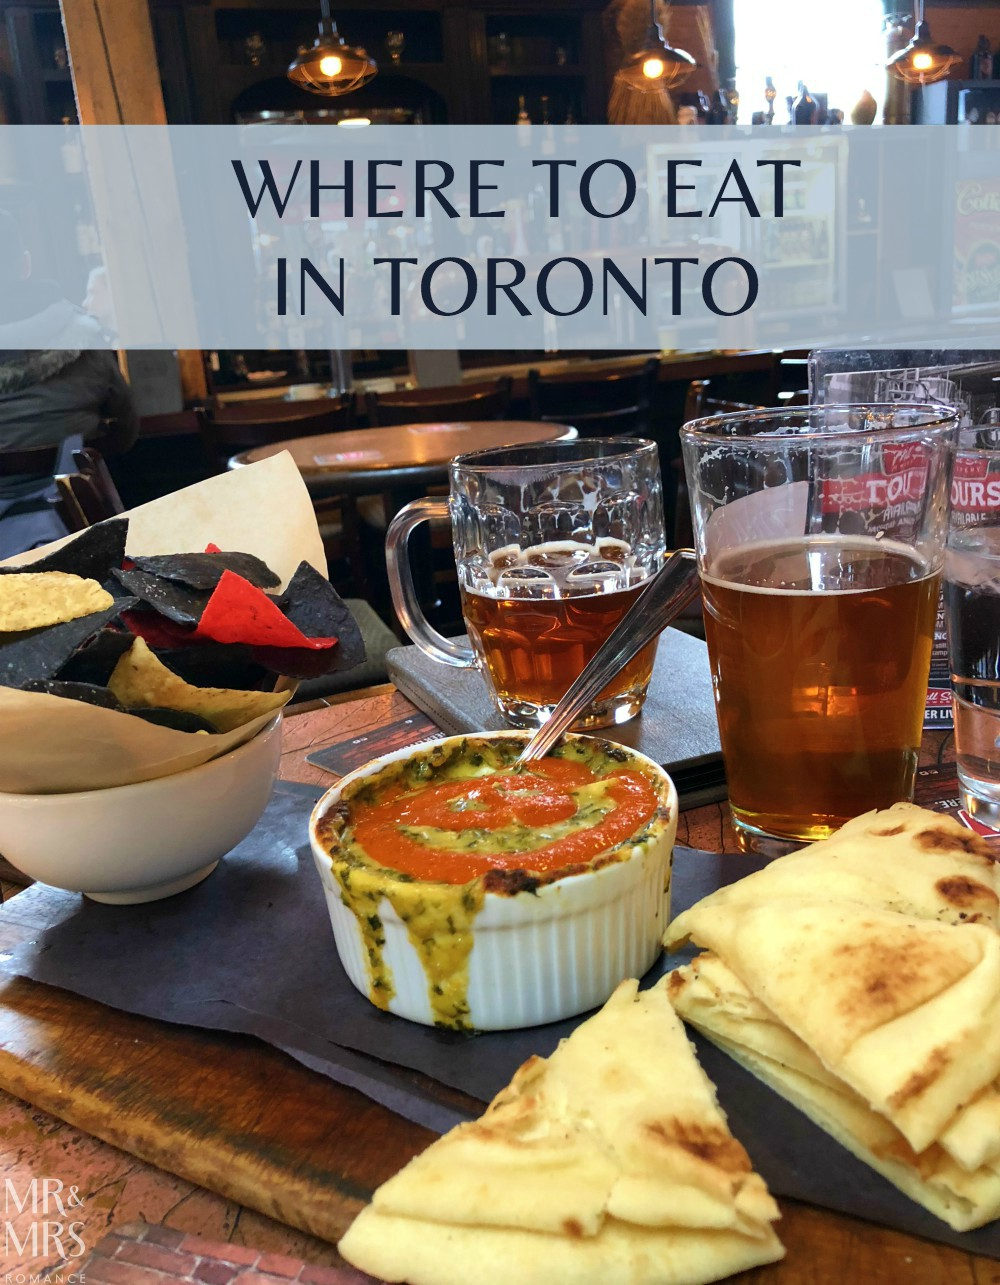 Where to eat in Toronto - Mr & Mrs Romance